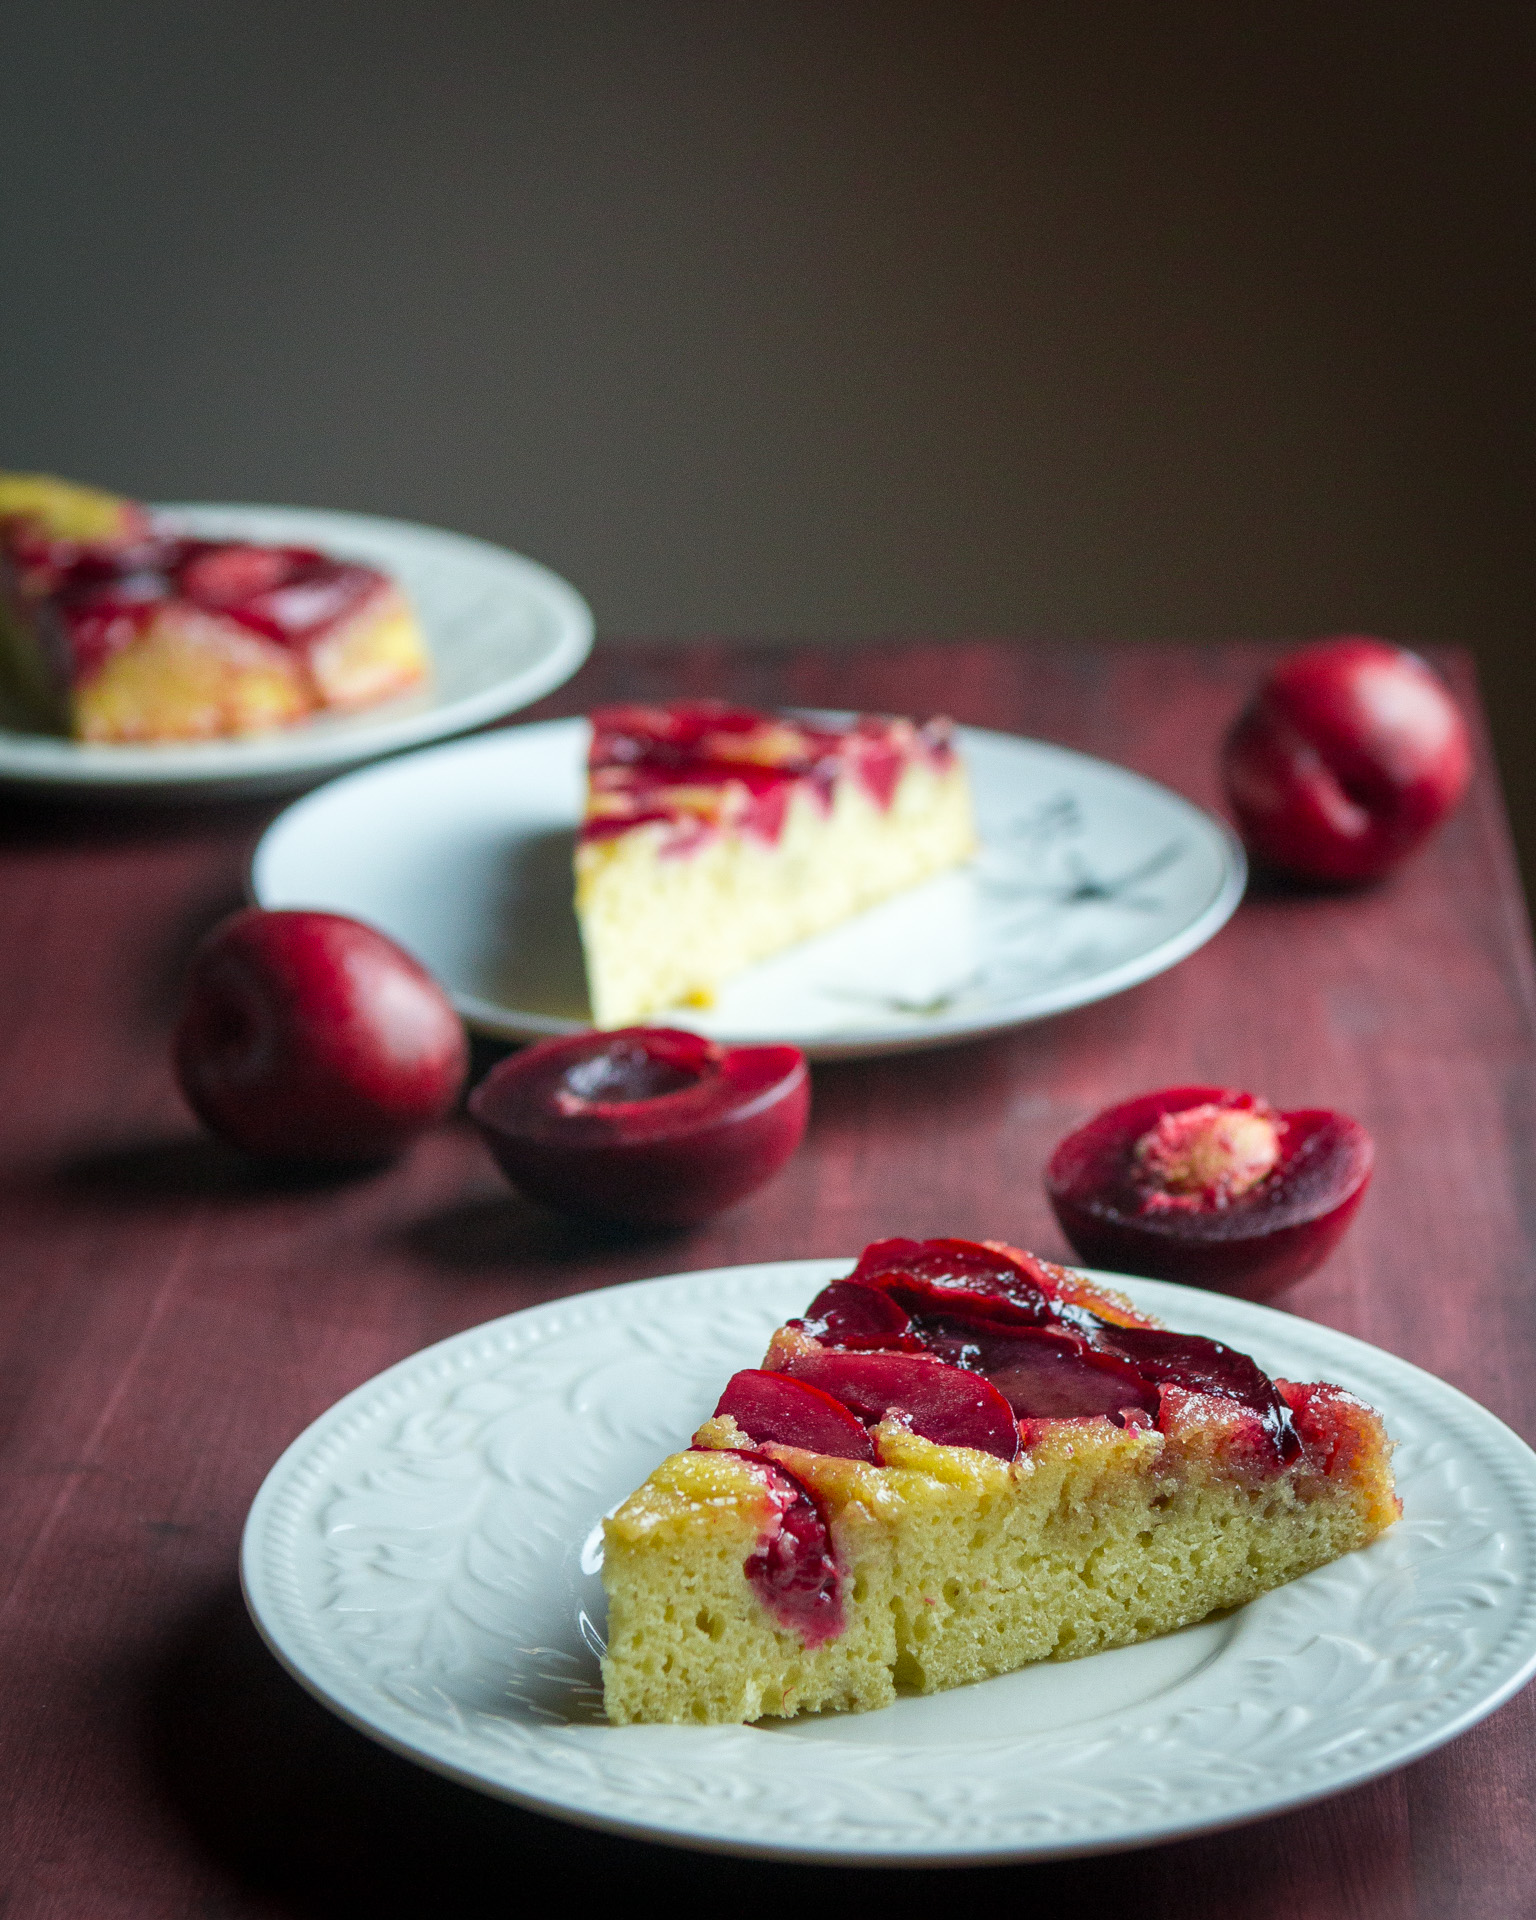 plum-upside-down-cake-14.jpg